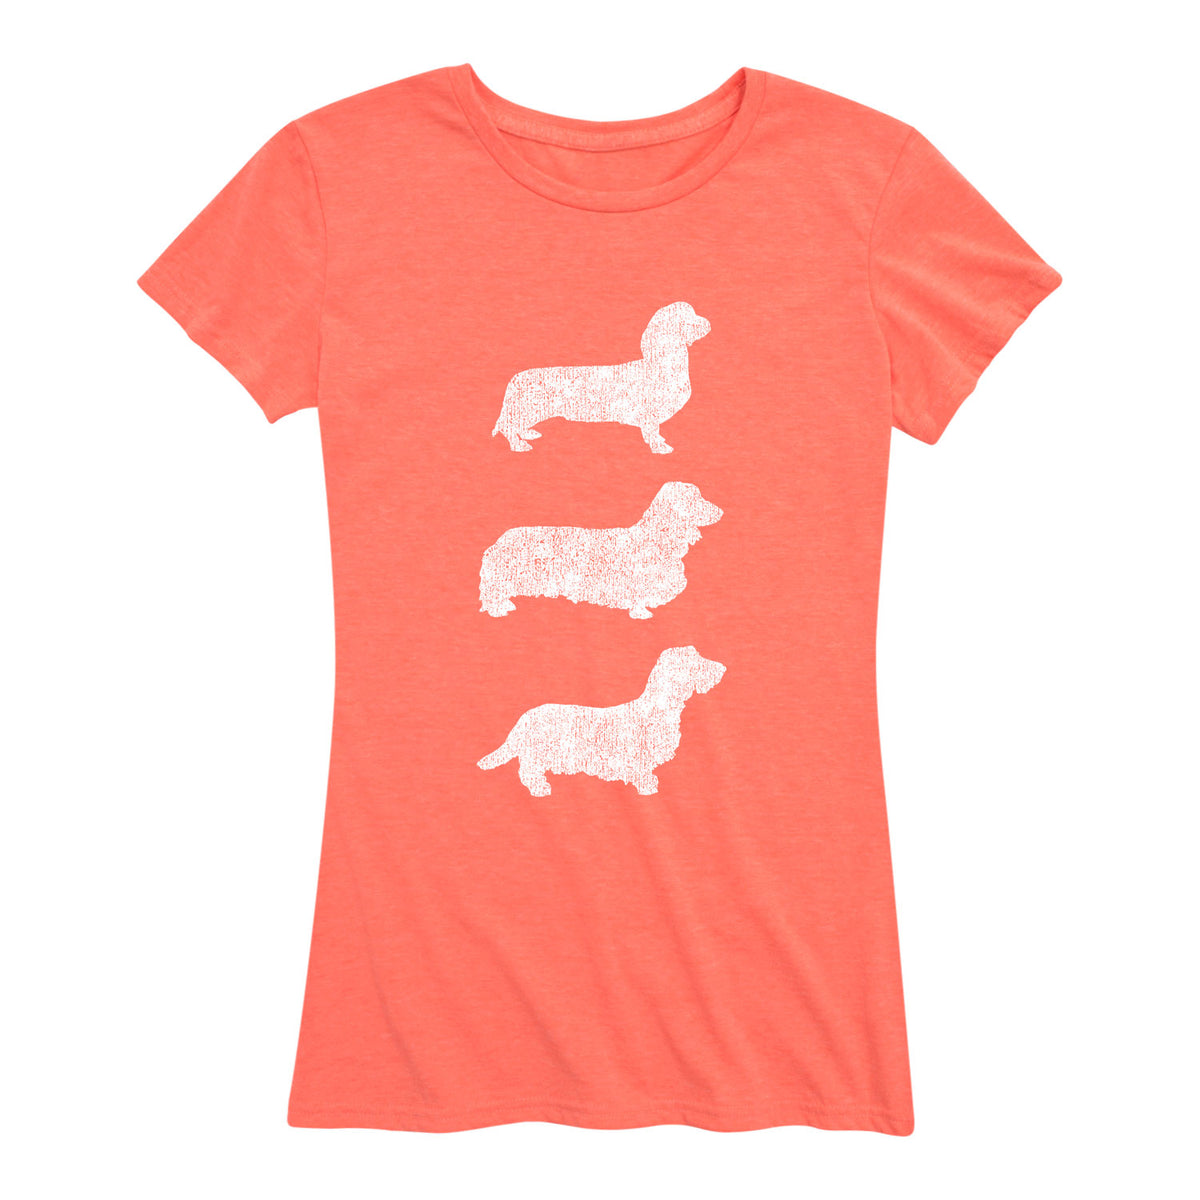 Dachshunds - Women's Short Sleeve T-Shirt